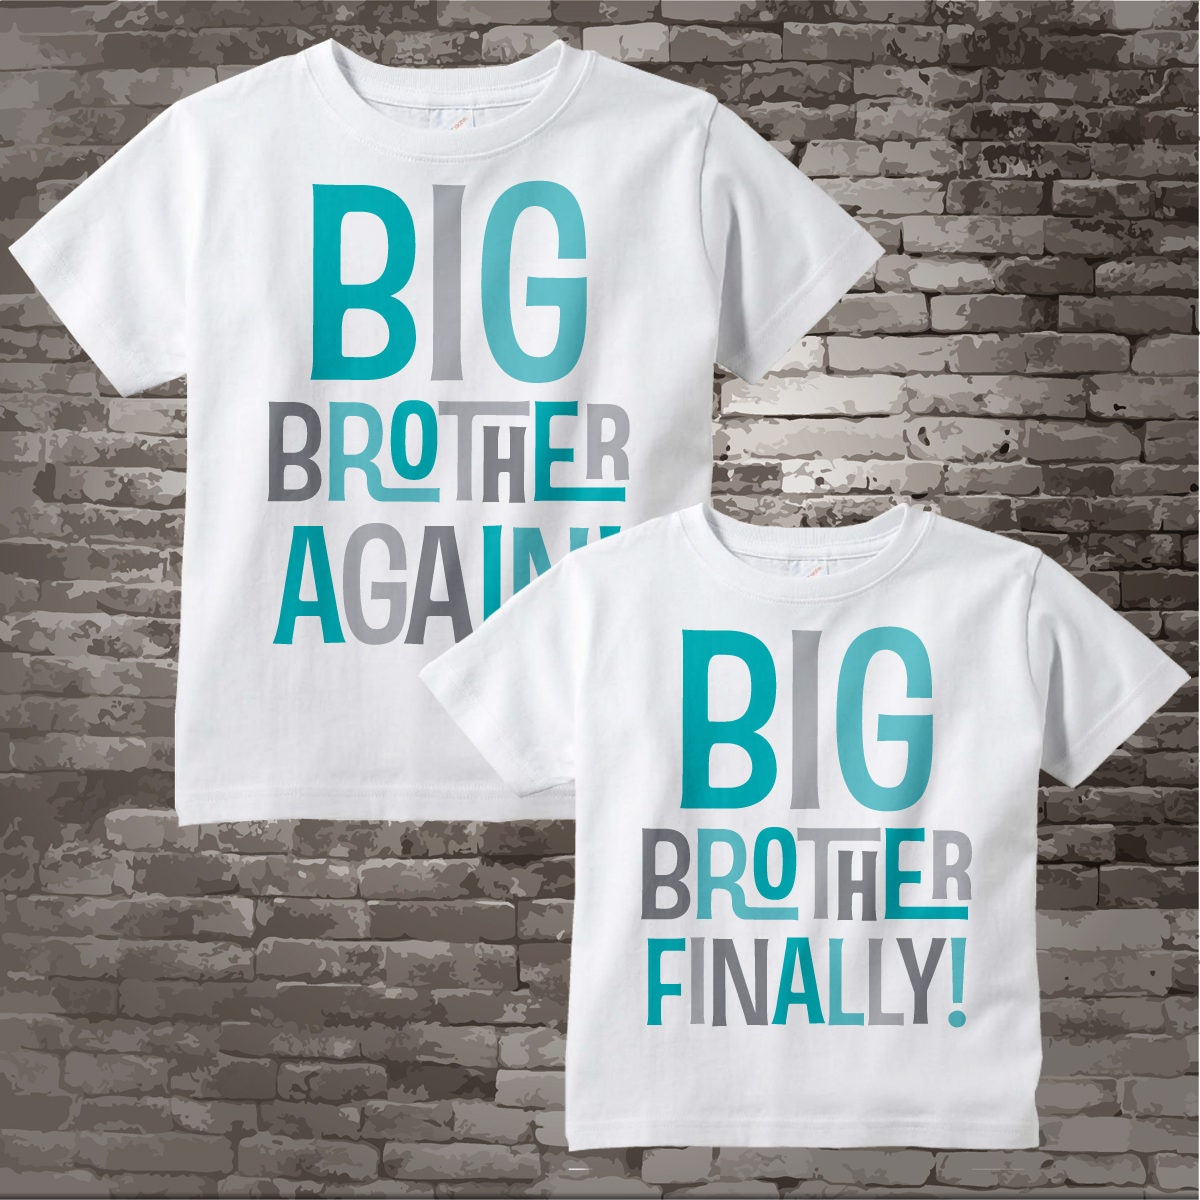 aca66b5641 Big Brother Again and Big Brother Finally Tee Shirt or Onesie set of ...